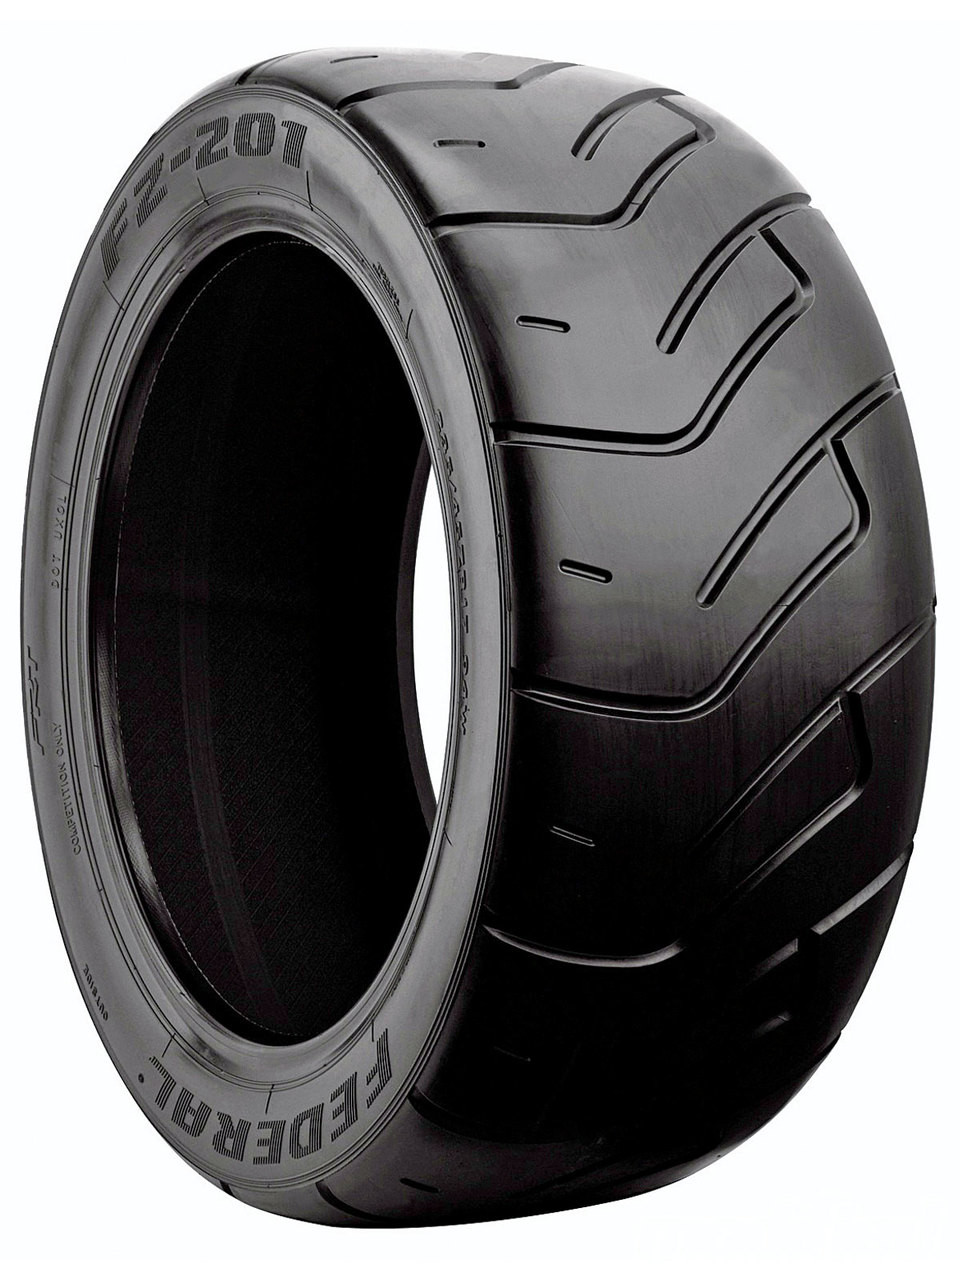 lowest priced federal tires fz201 semi slick performance. Black Bedroom Furniture Sets. Home Design Ideas